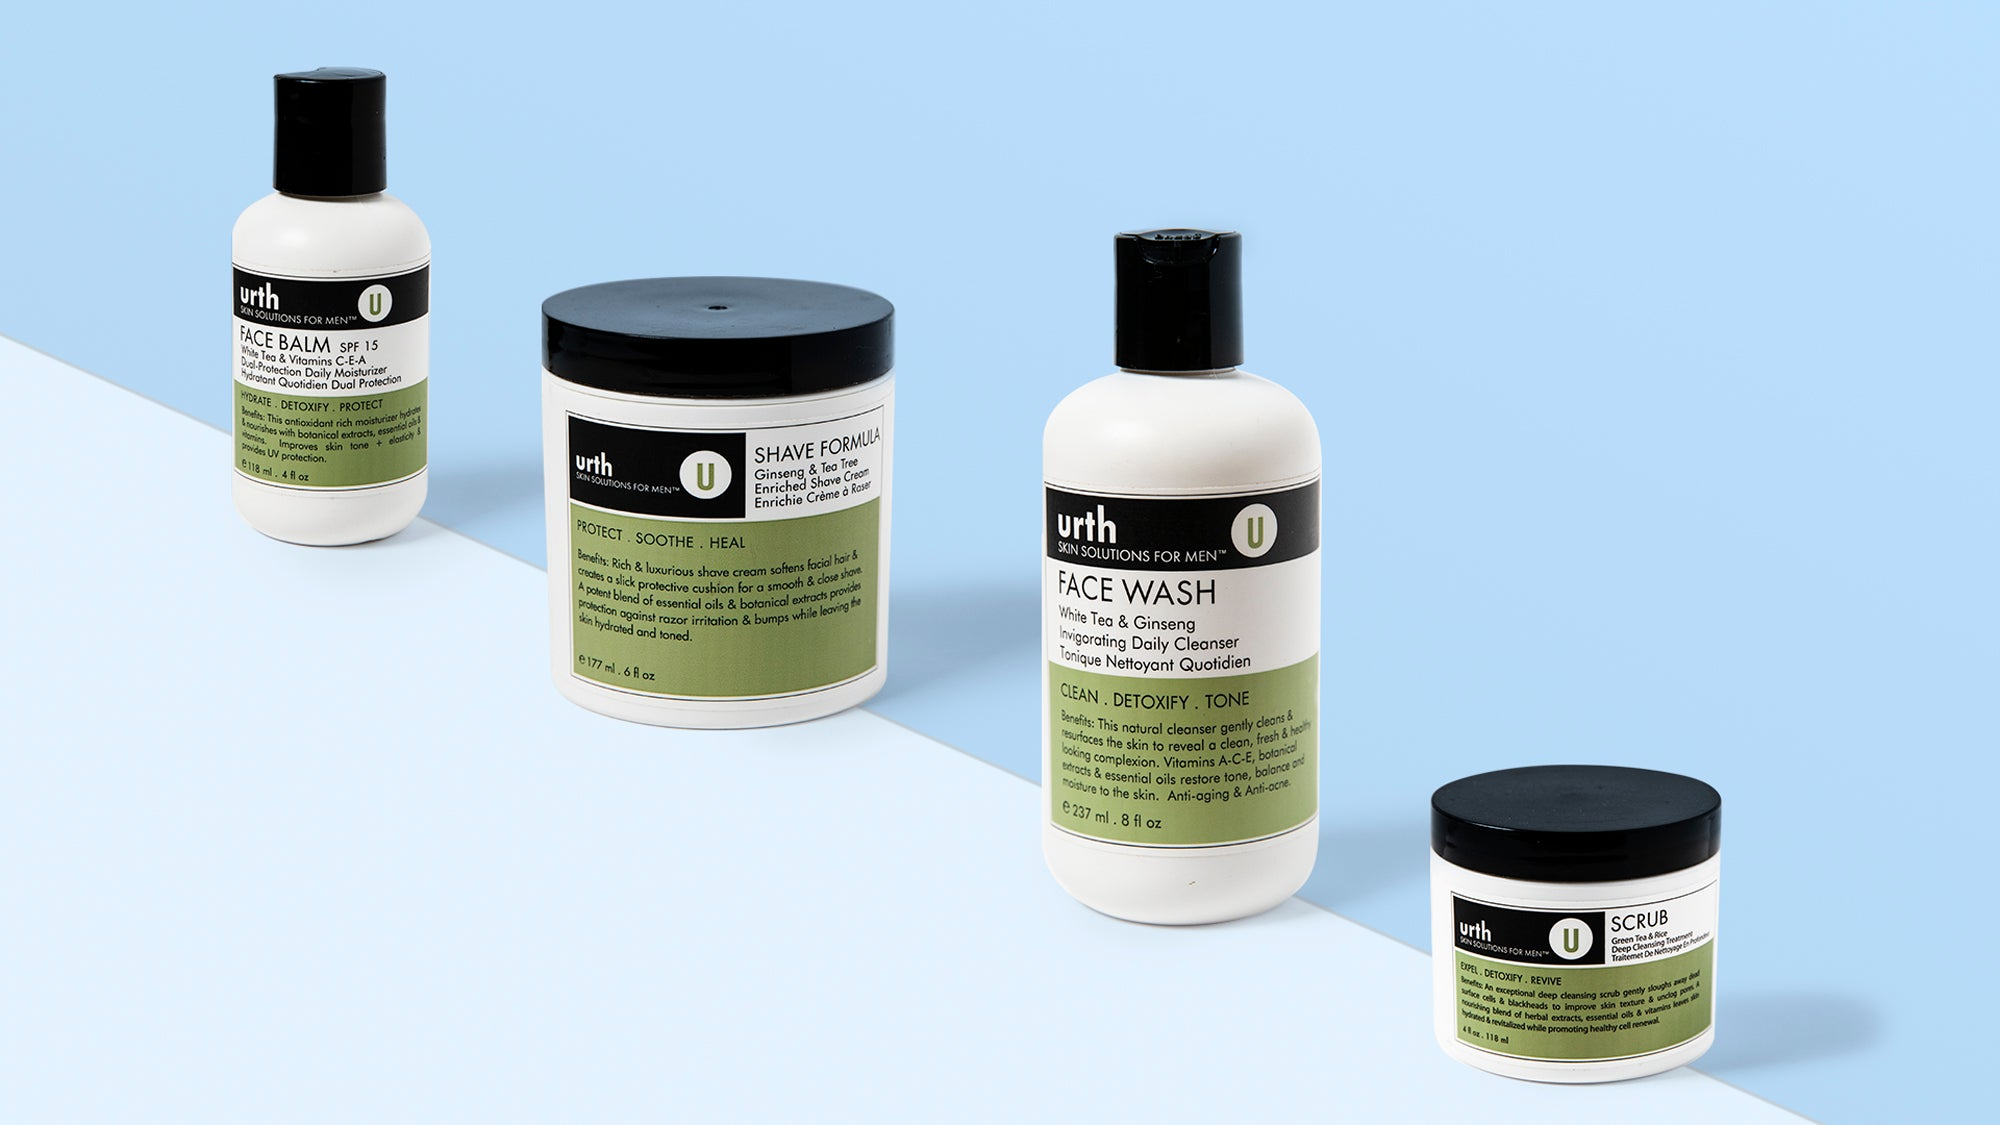 Face balm SPF 15, Face Wash, Botanical Mask, Post Shave Elixir and Shave formula.